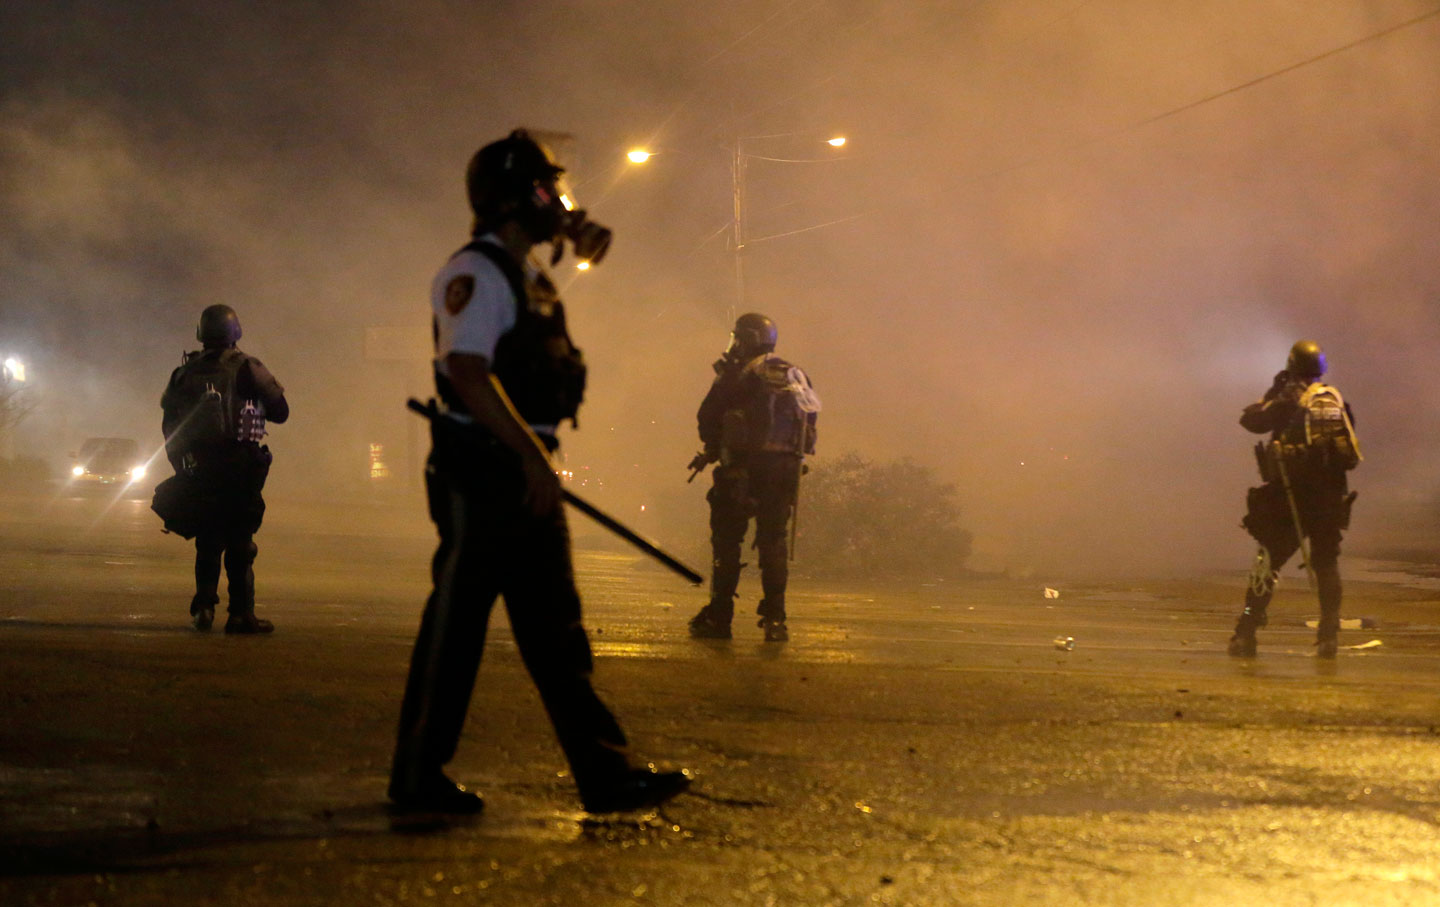 The Disturbing Parallels Between US Policing at Home and